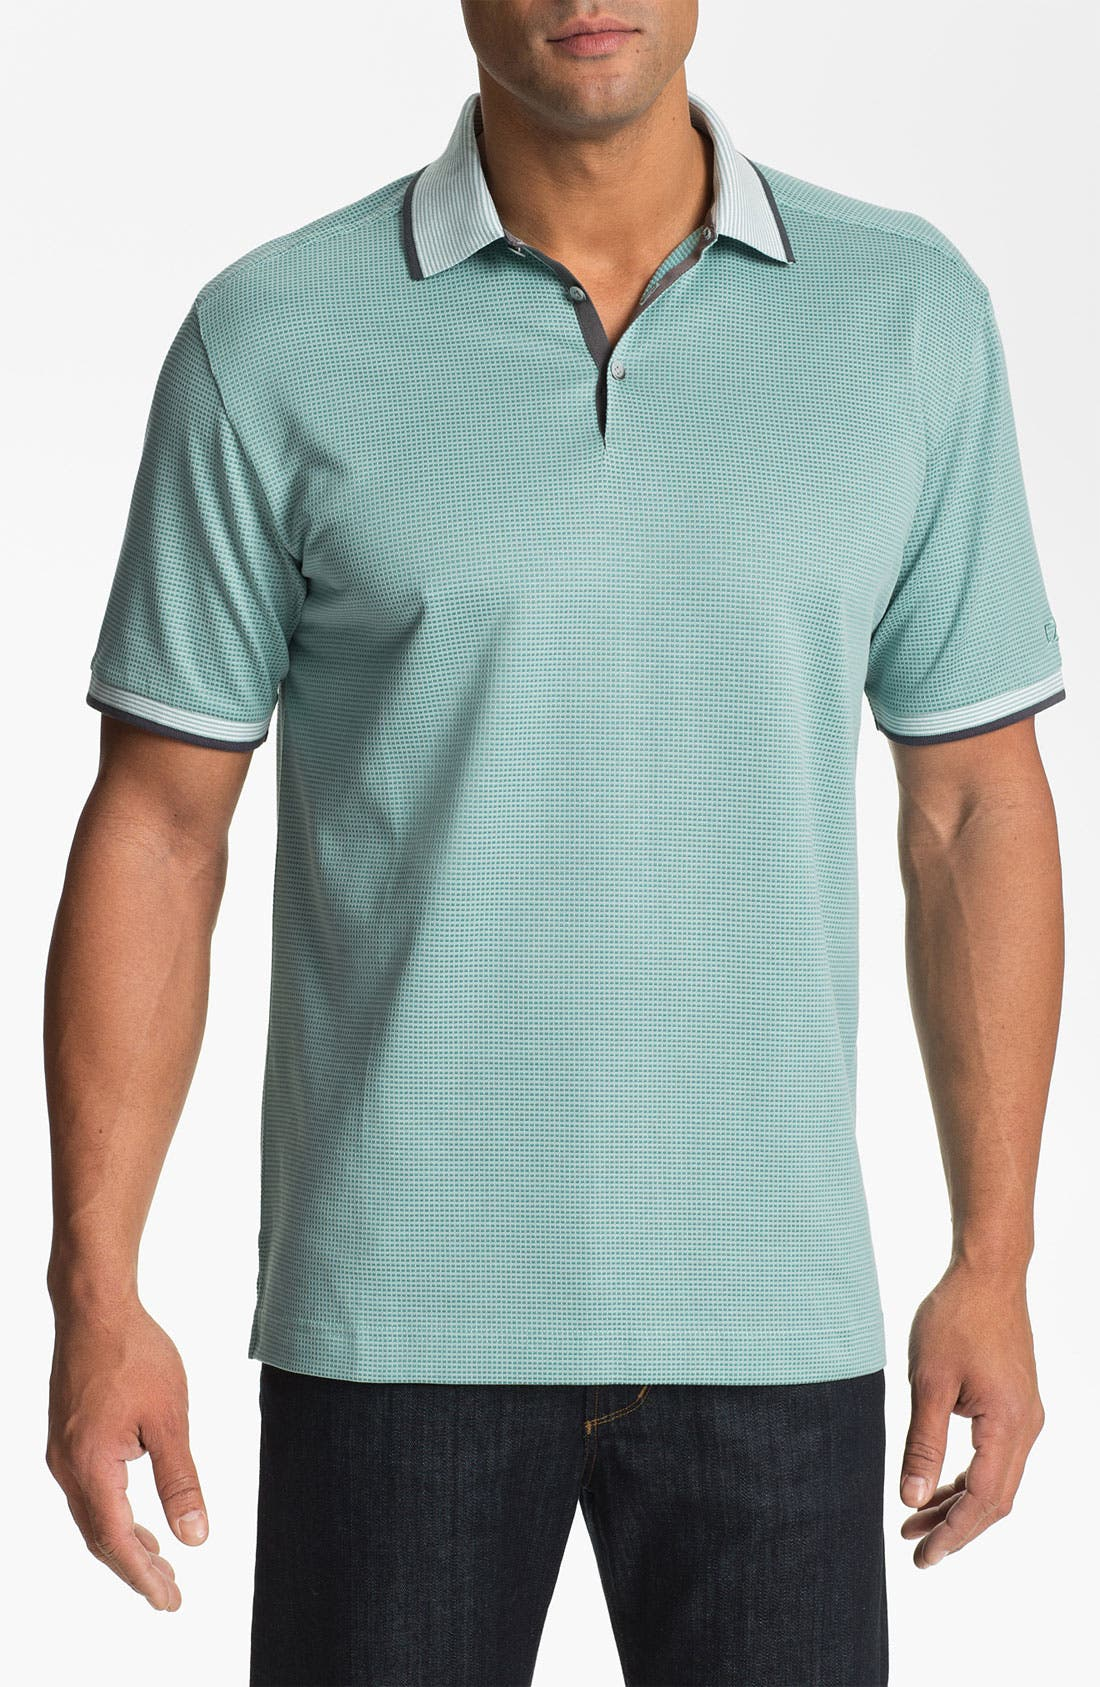 Alternate Image 1 Selected - Cutter & Buck 'Luxe - Shaw' DryTec Golf Polo (Big & Tall) (Online Only)